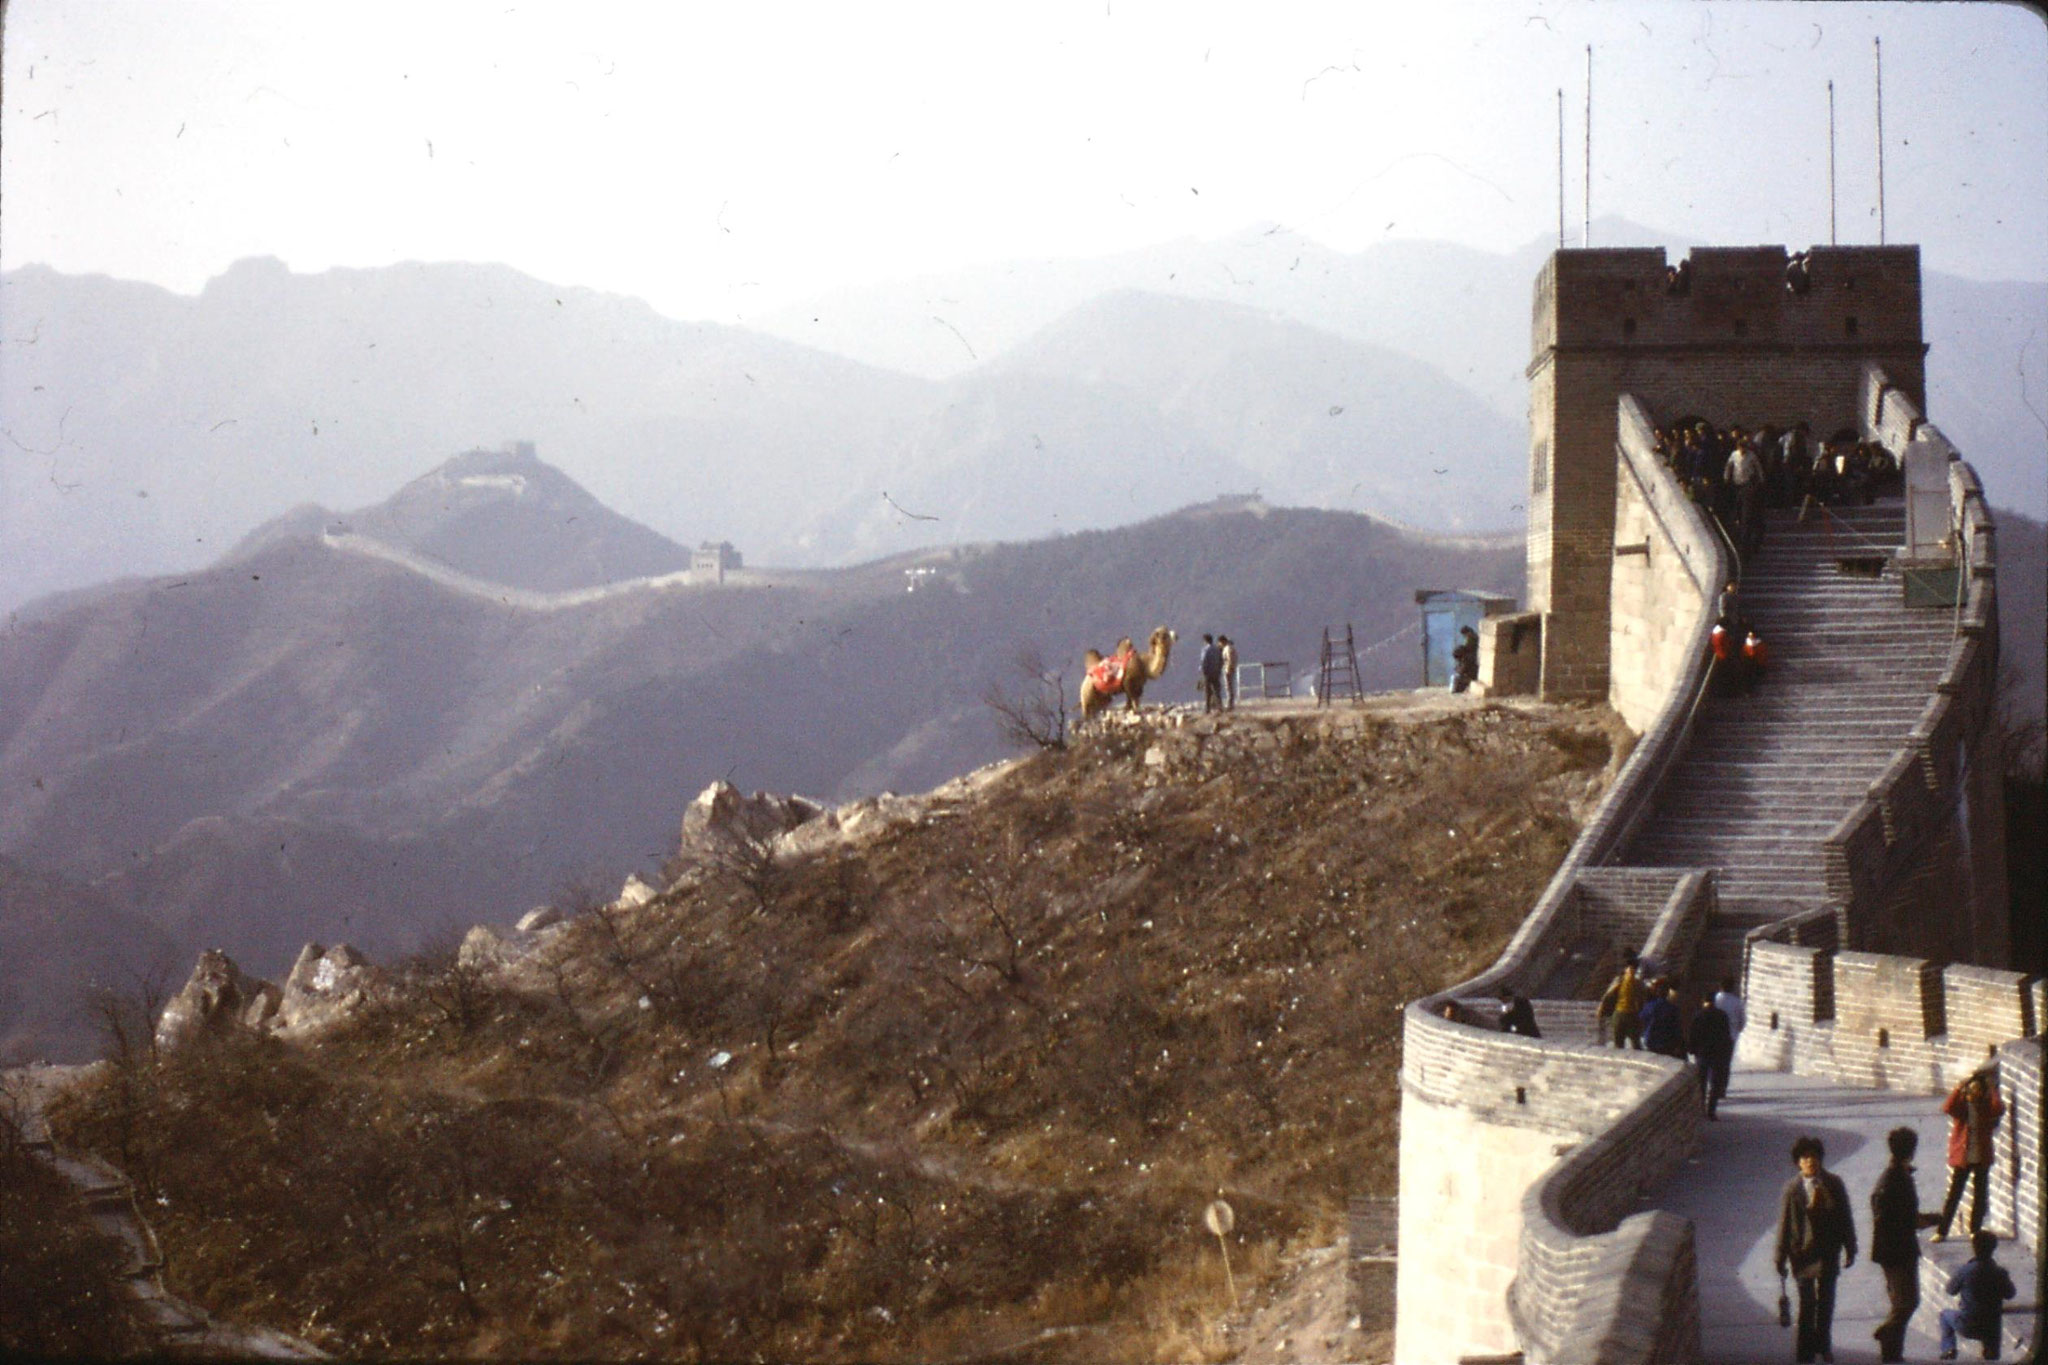 12/11/1988: 1: Great Wall at Badaling